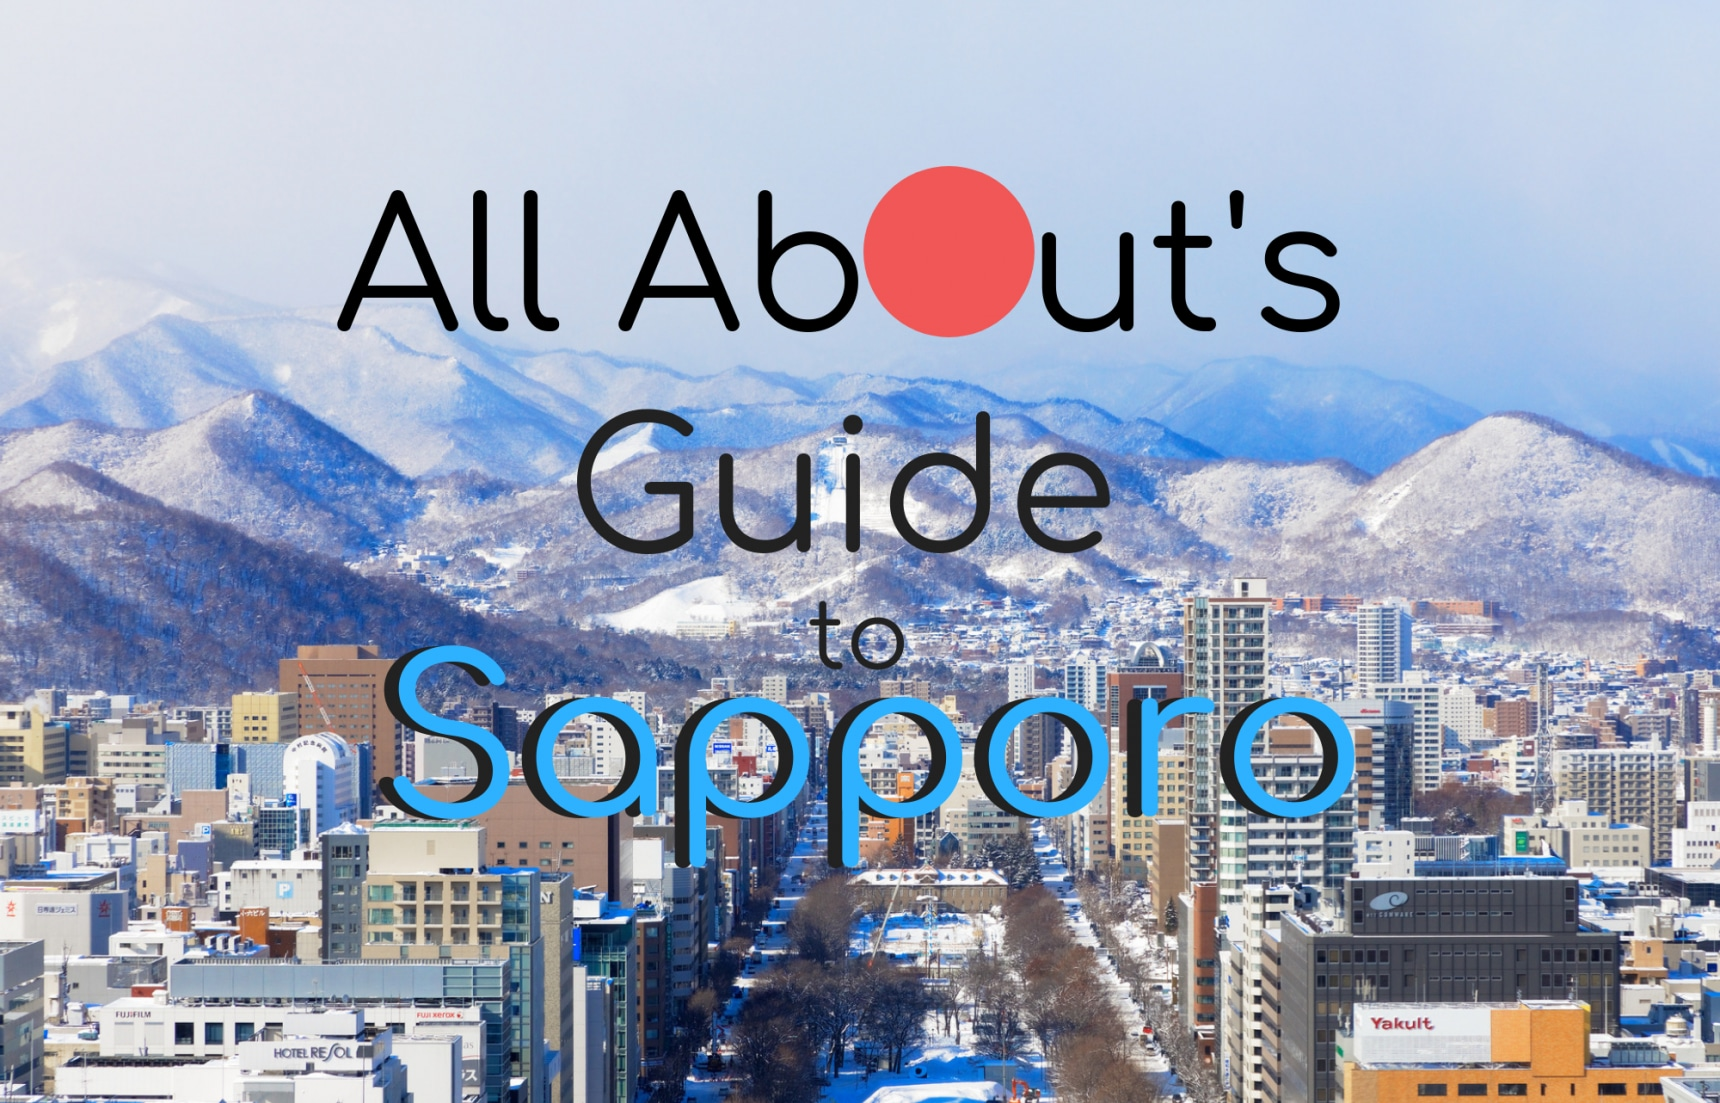 All About's Guide to Sapporo